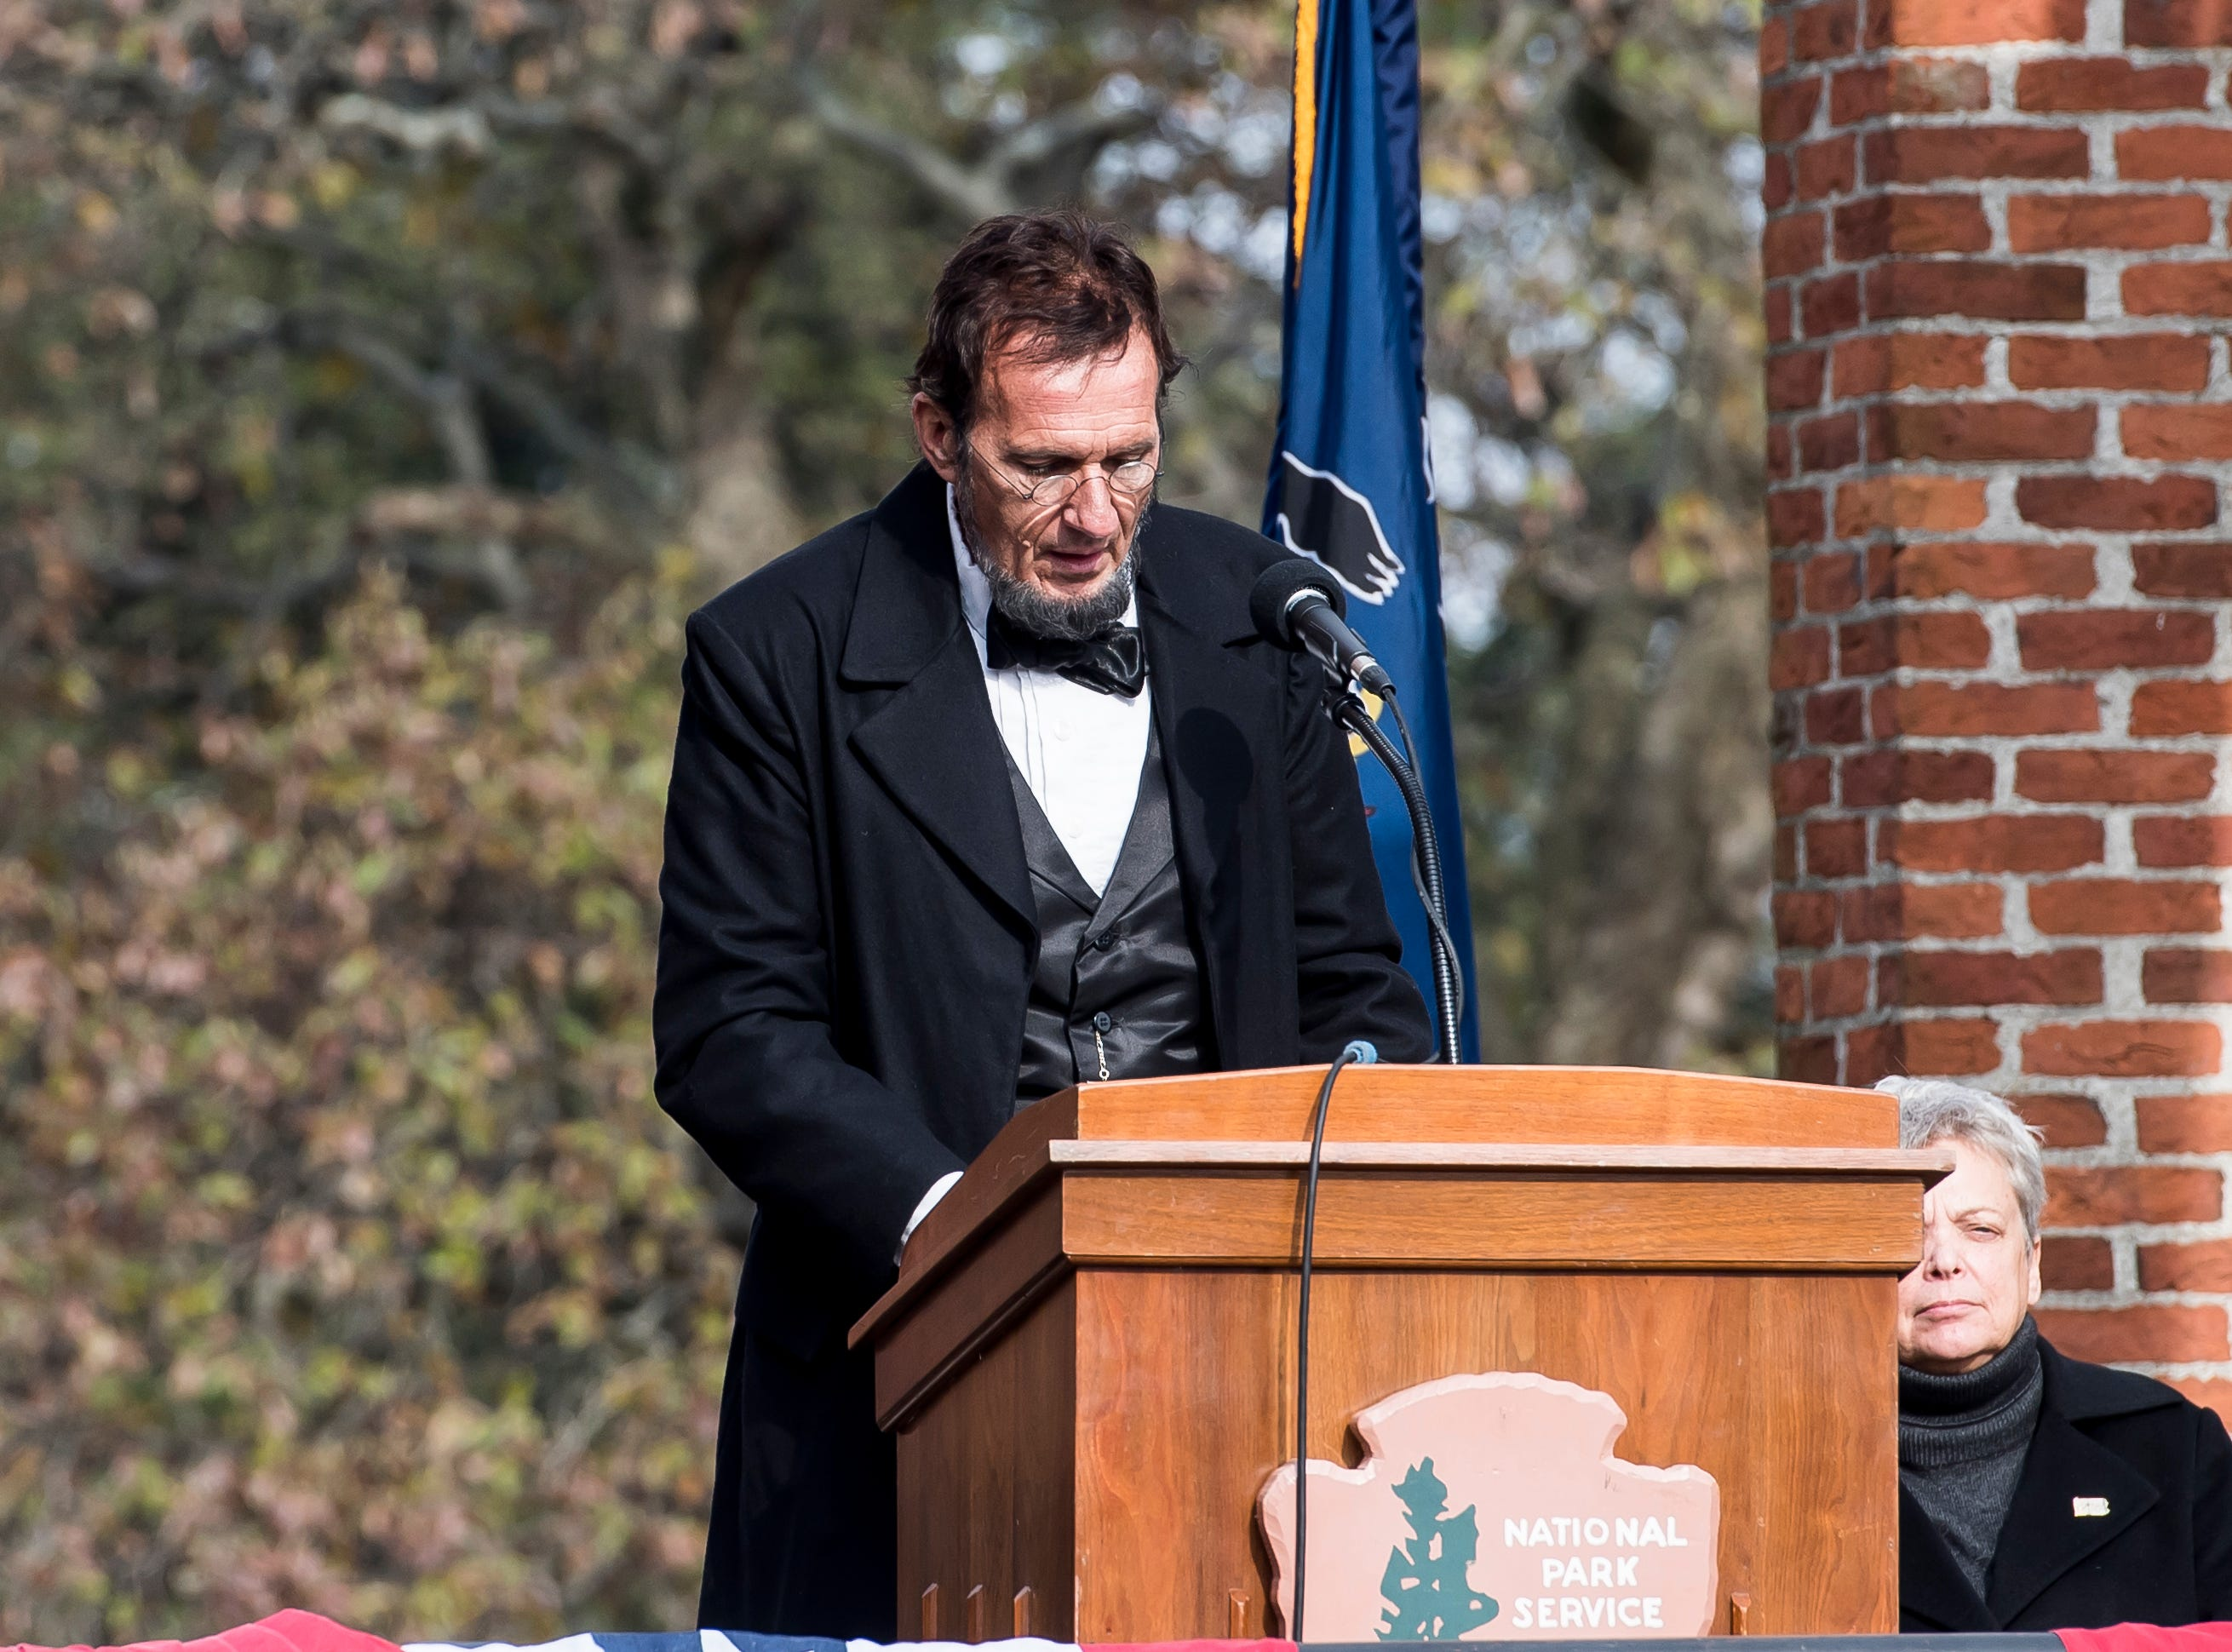 George Buss, portraying Abraham Lincoln, recites the Gettysburg Address during Dedication Day on November, 19, 2018. The day marked the 155th anniversary of Lincoln's Gettysburg Address.